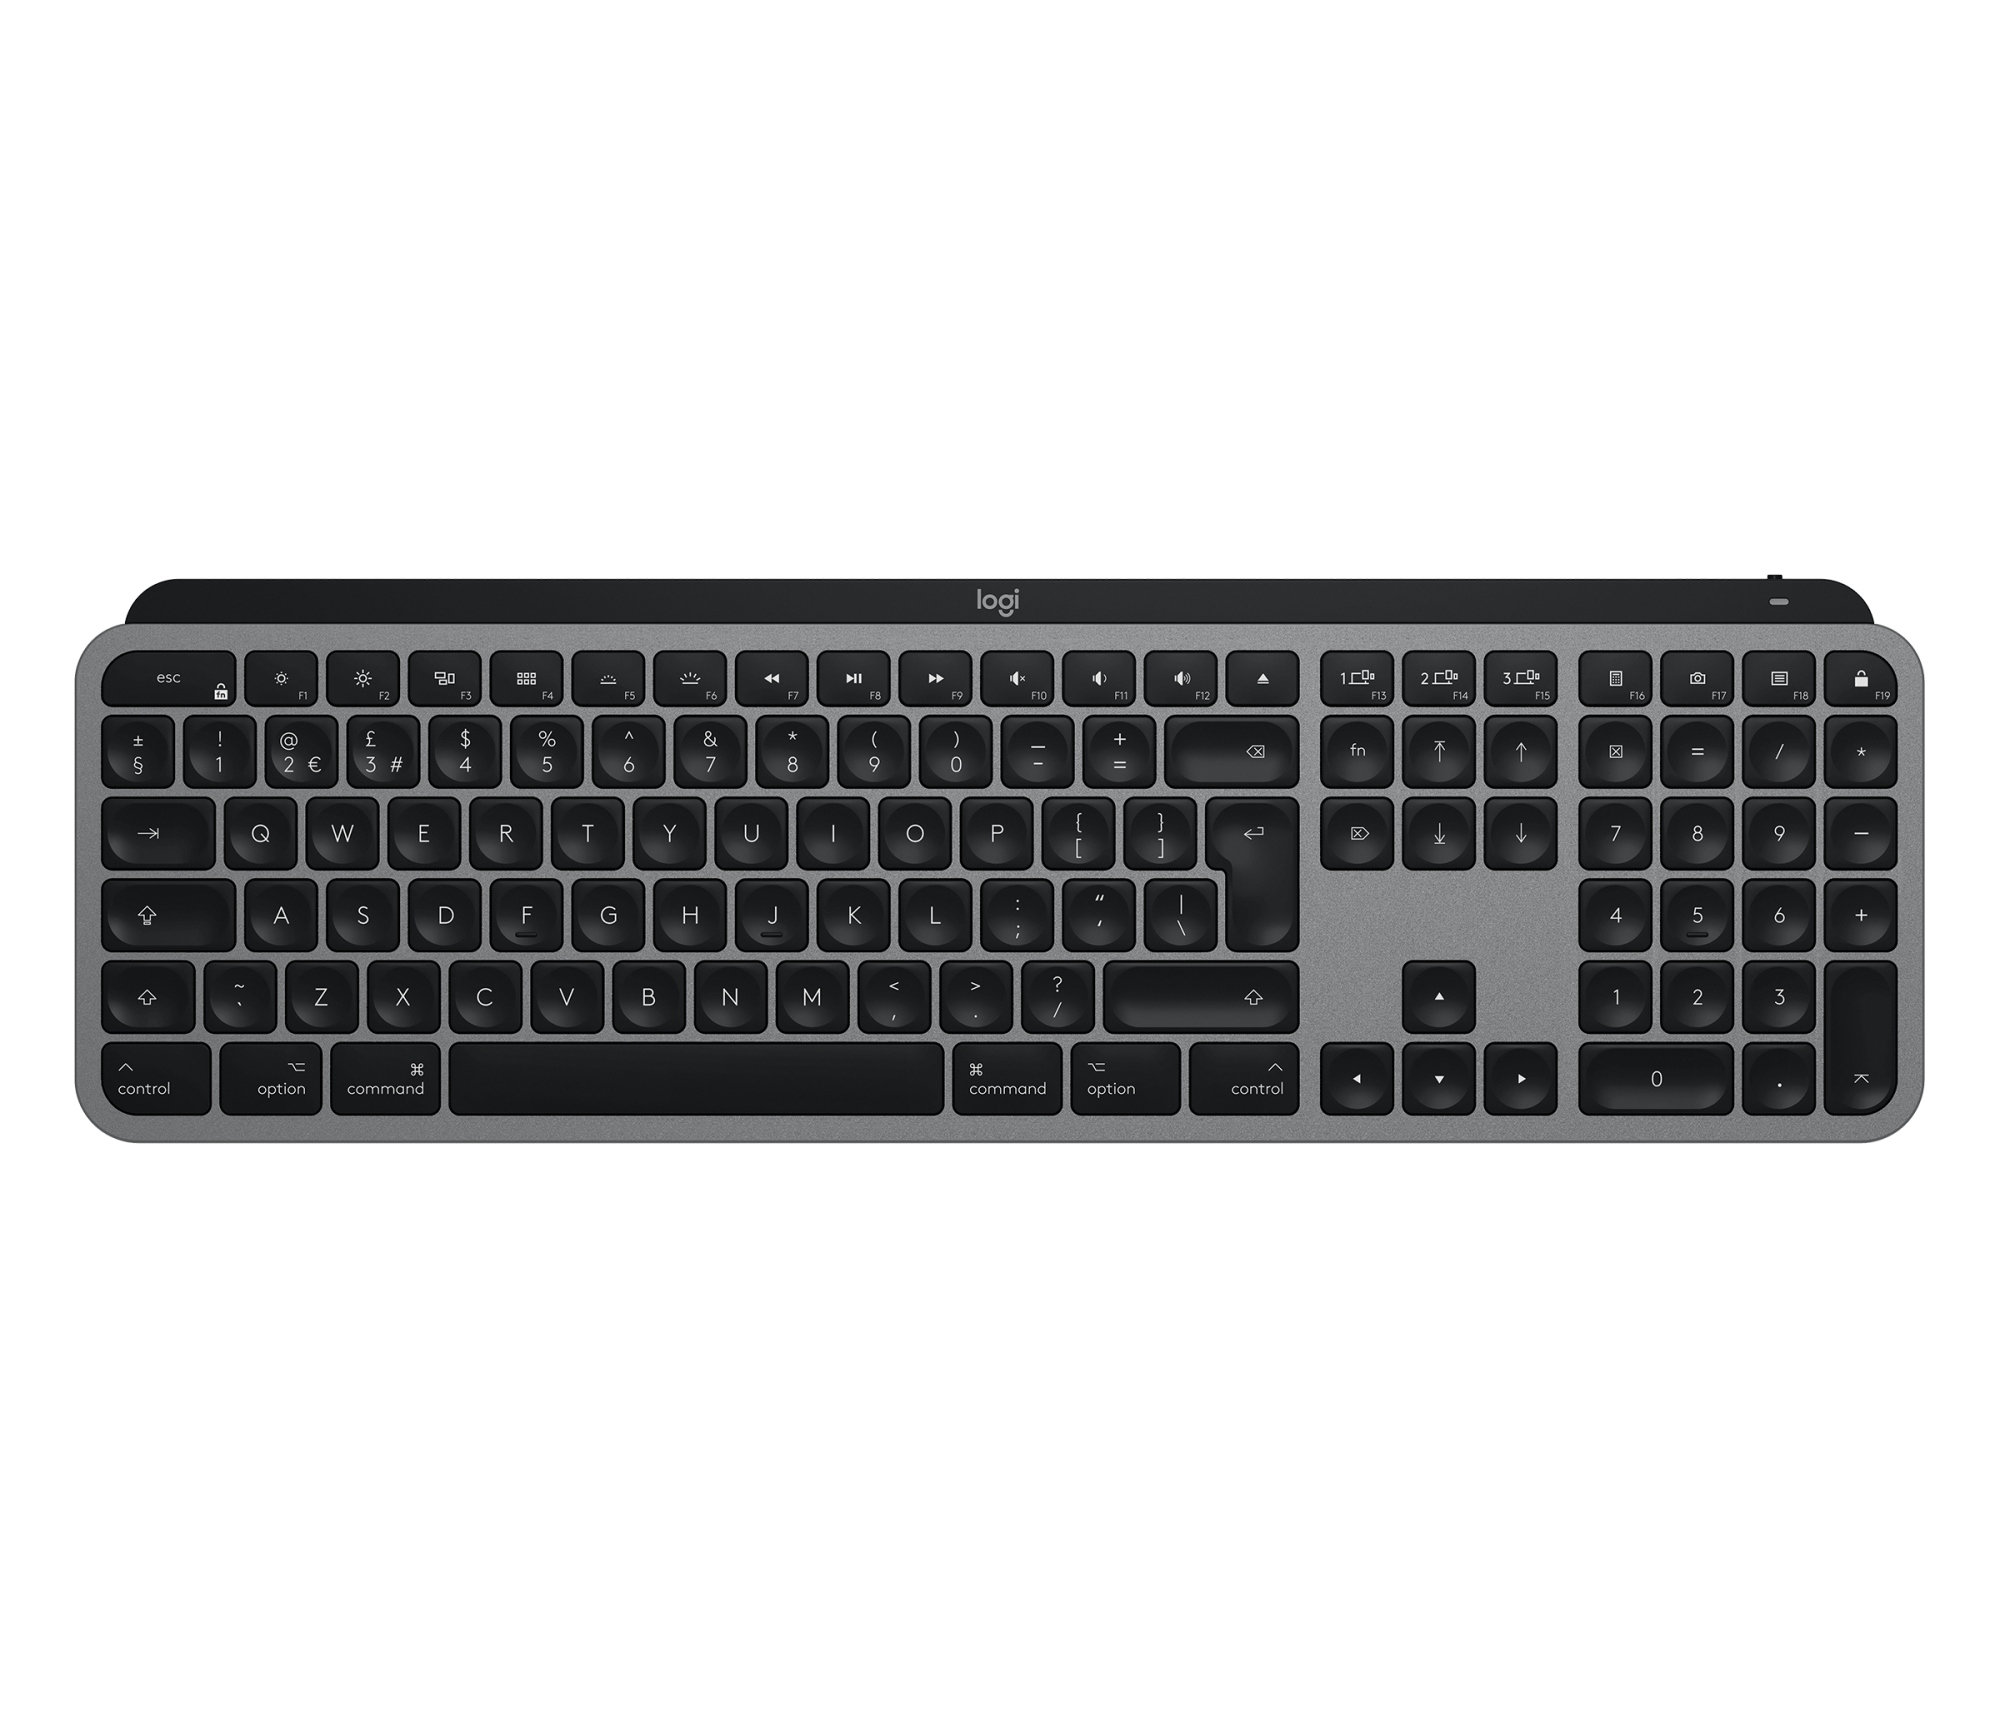 Mx Keys Teclado Rf Wireless + Bluetooth Qwerty Español Aluminio, Negro 0.0